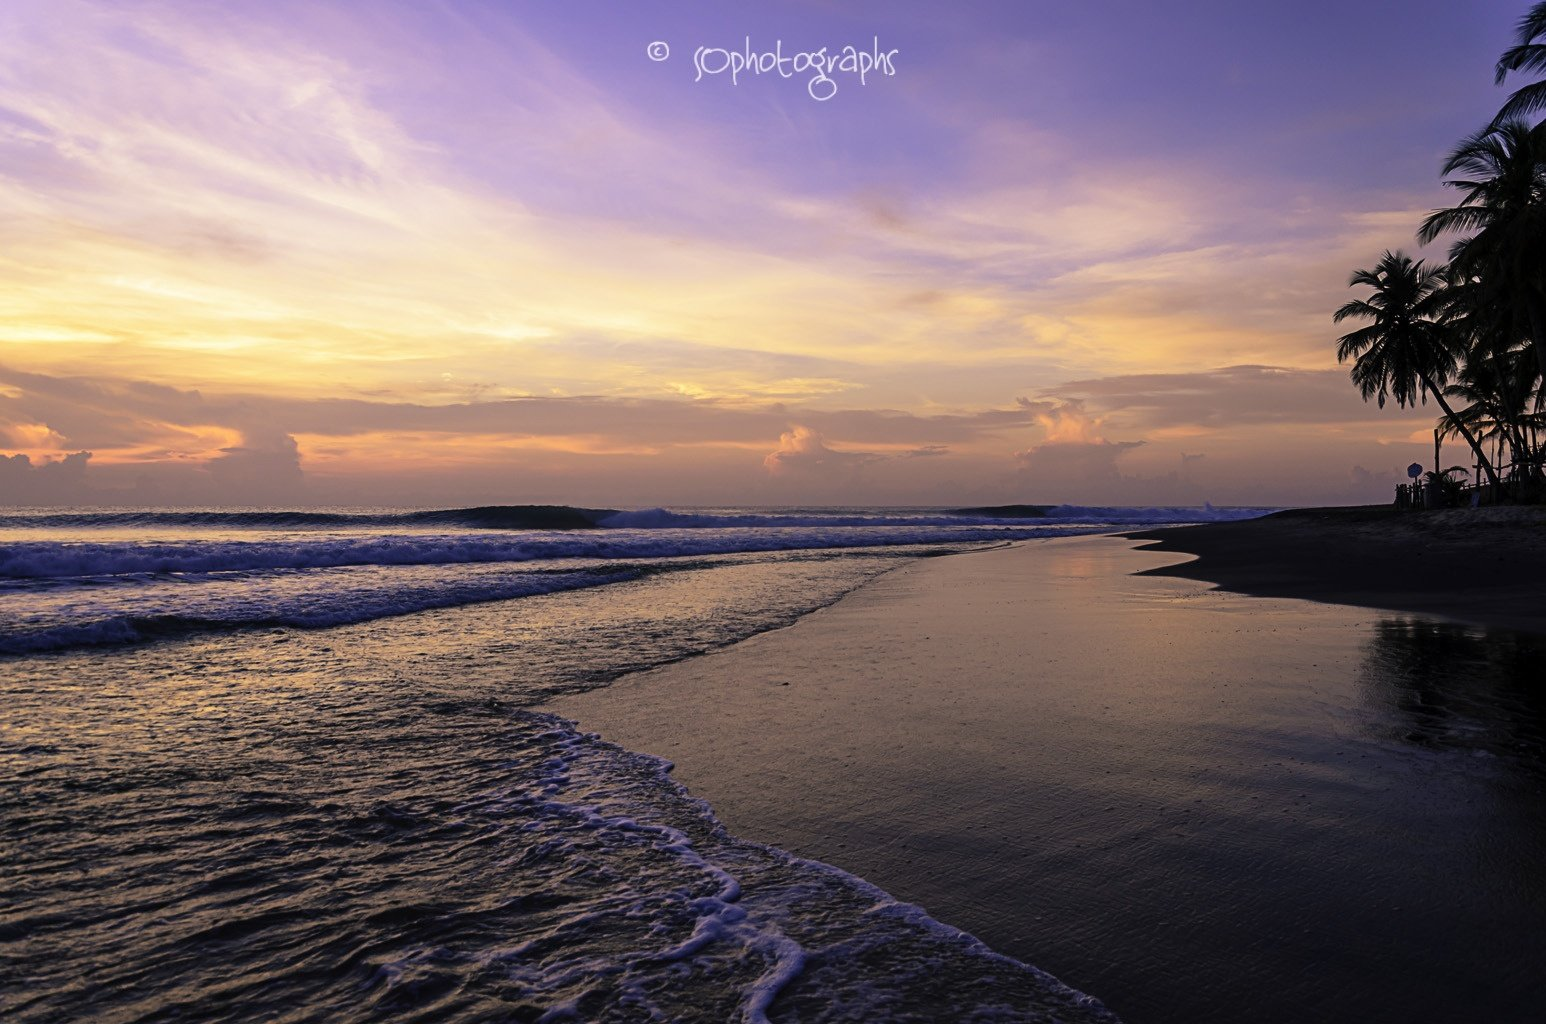 SO photographs's photo of Arugam Bay